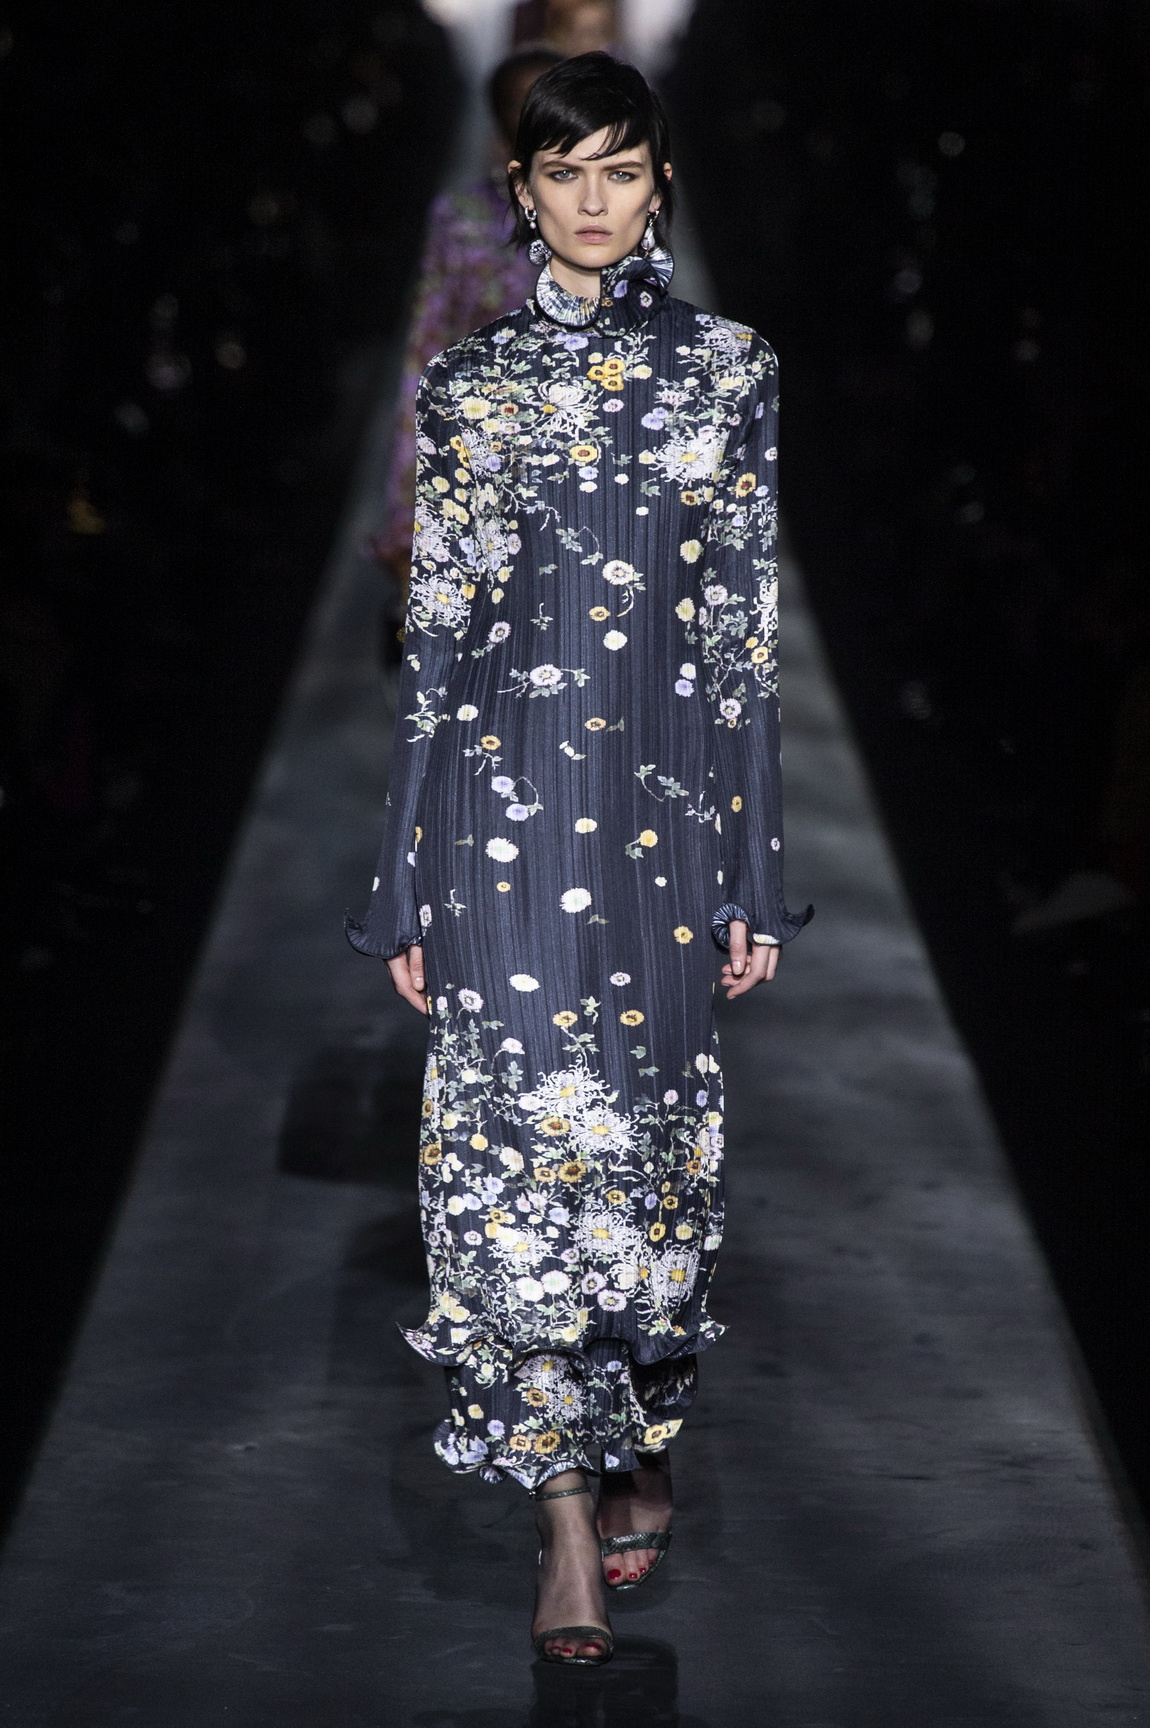 1551723675909-AW19C-Givenchy-026